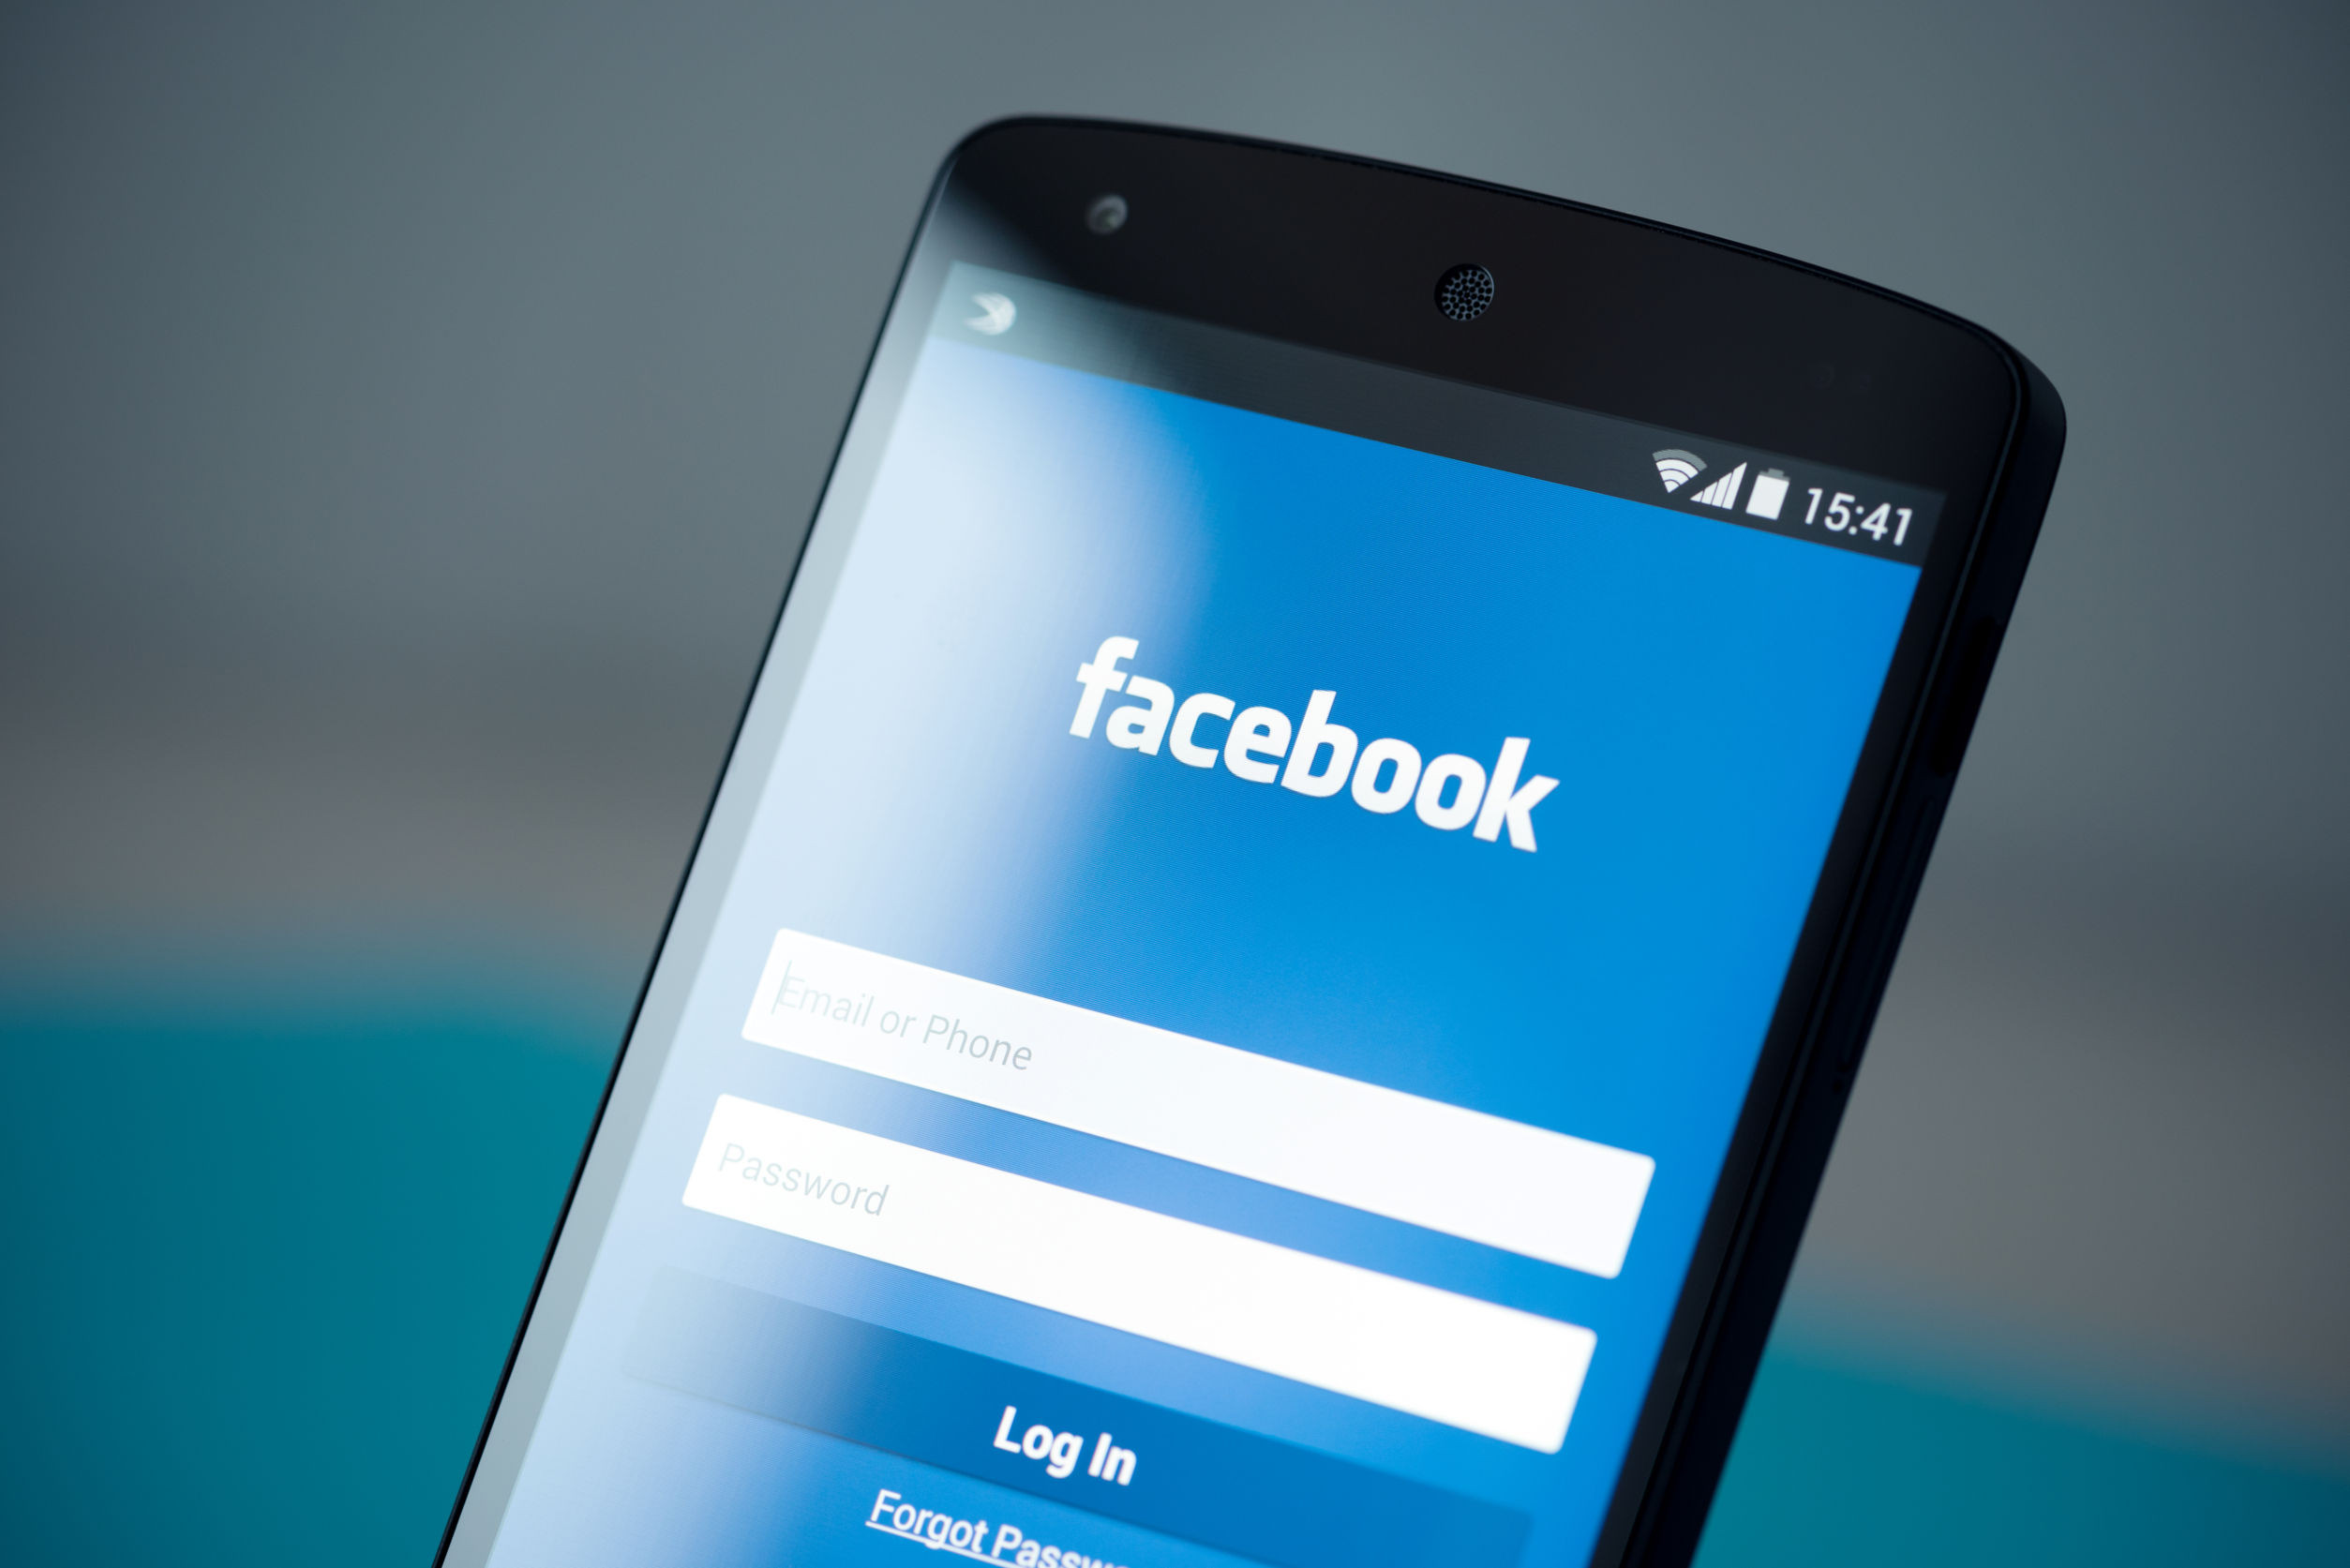 On Facebook a lot? Average users around the world spend more than 50 minutes on website, related apps